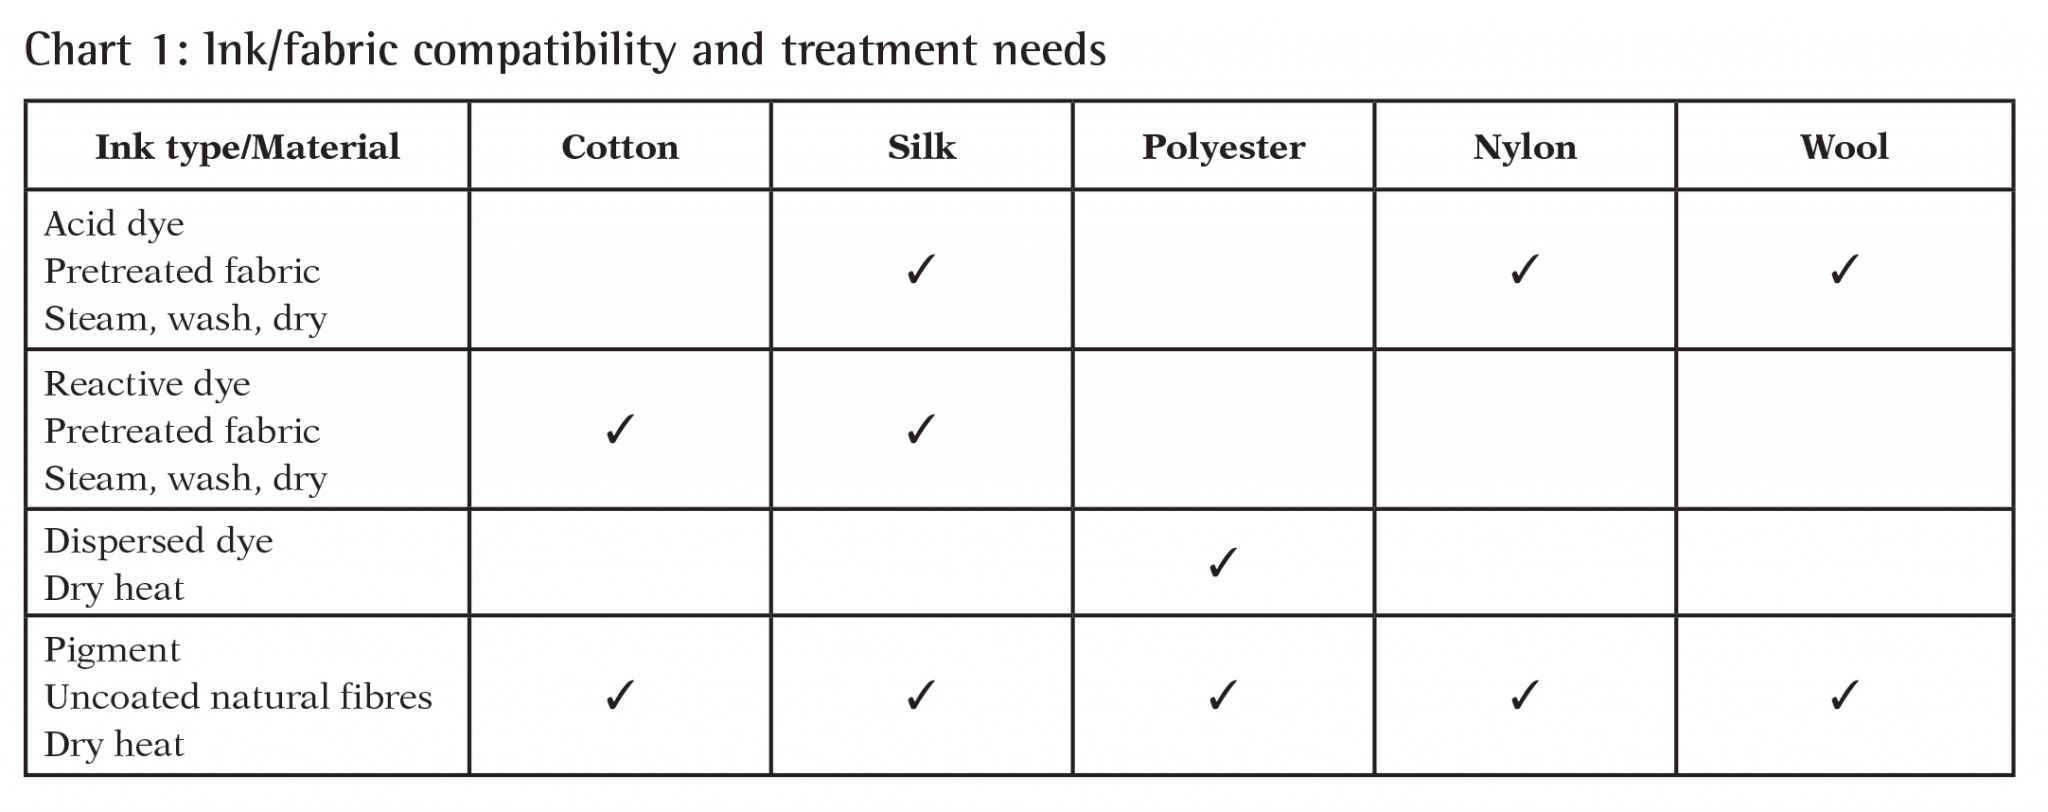 Chart 1: Ink/fabric compatibility and treatment needs